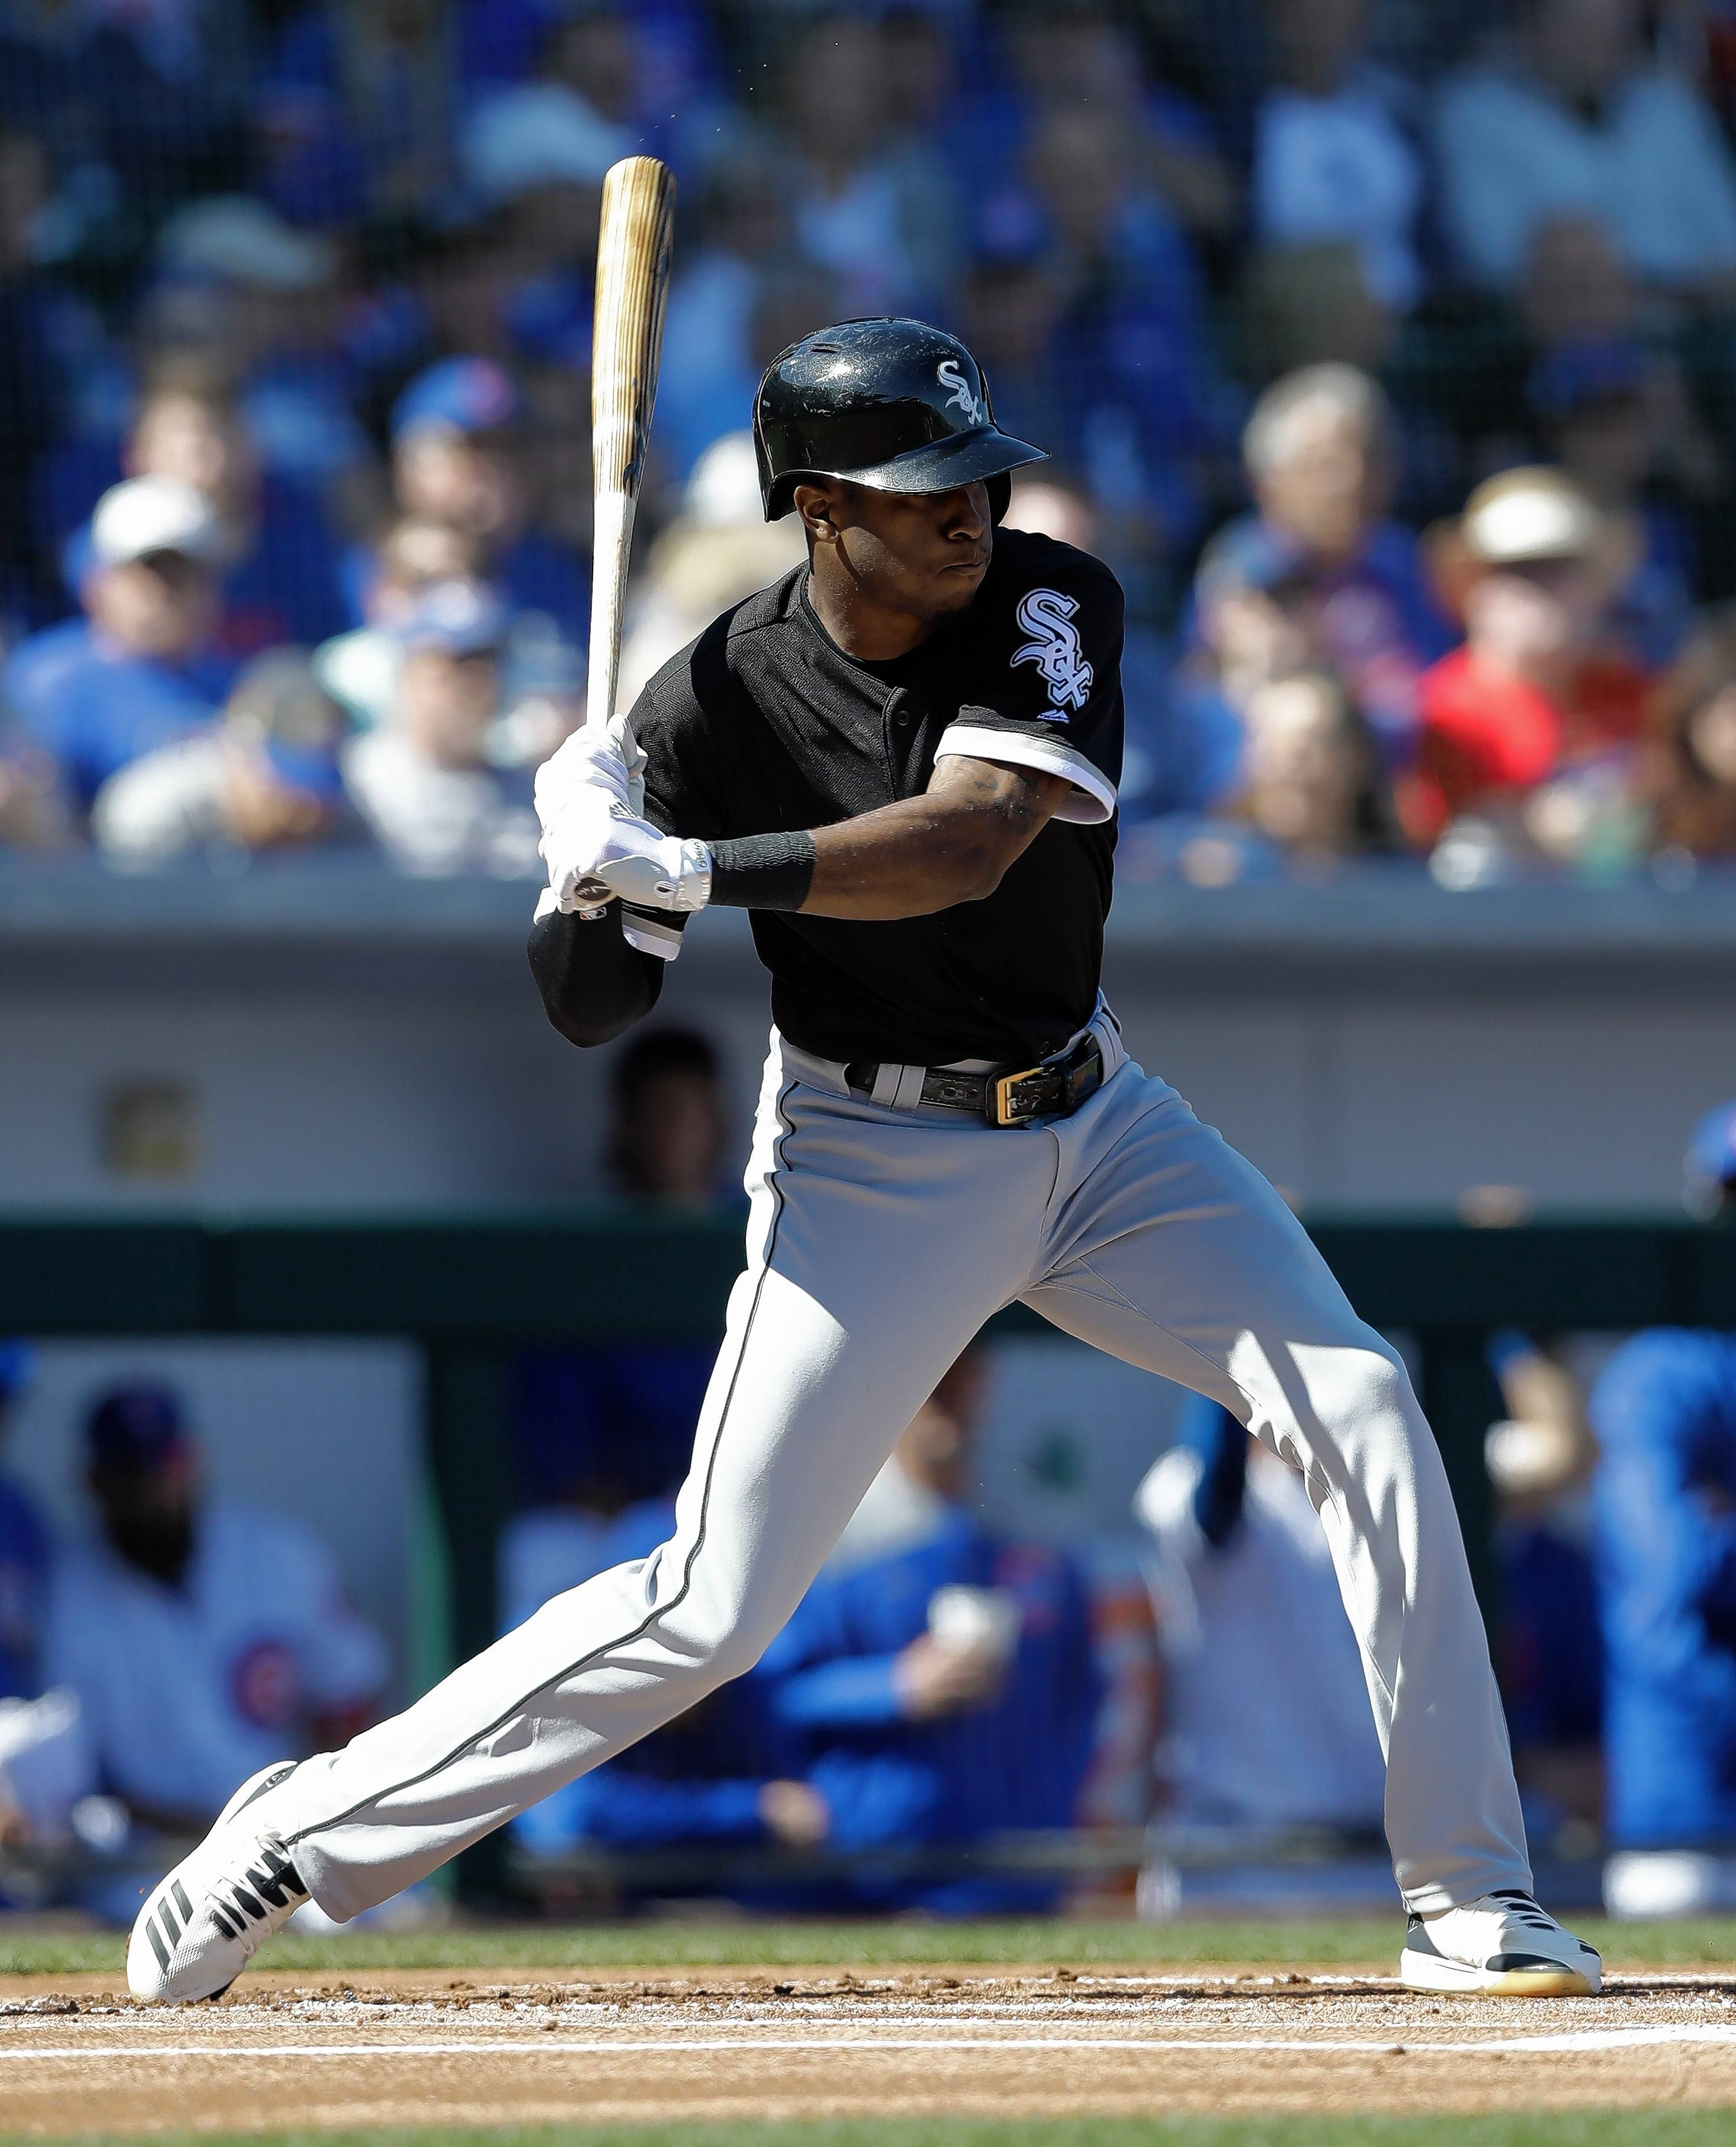 After a rollercoaster 2017, his first full season with the Chicago White Sox, shortstop Tim Anderson is in a much better place and excited about the upcoming year.